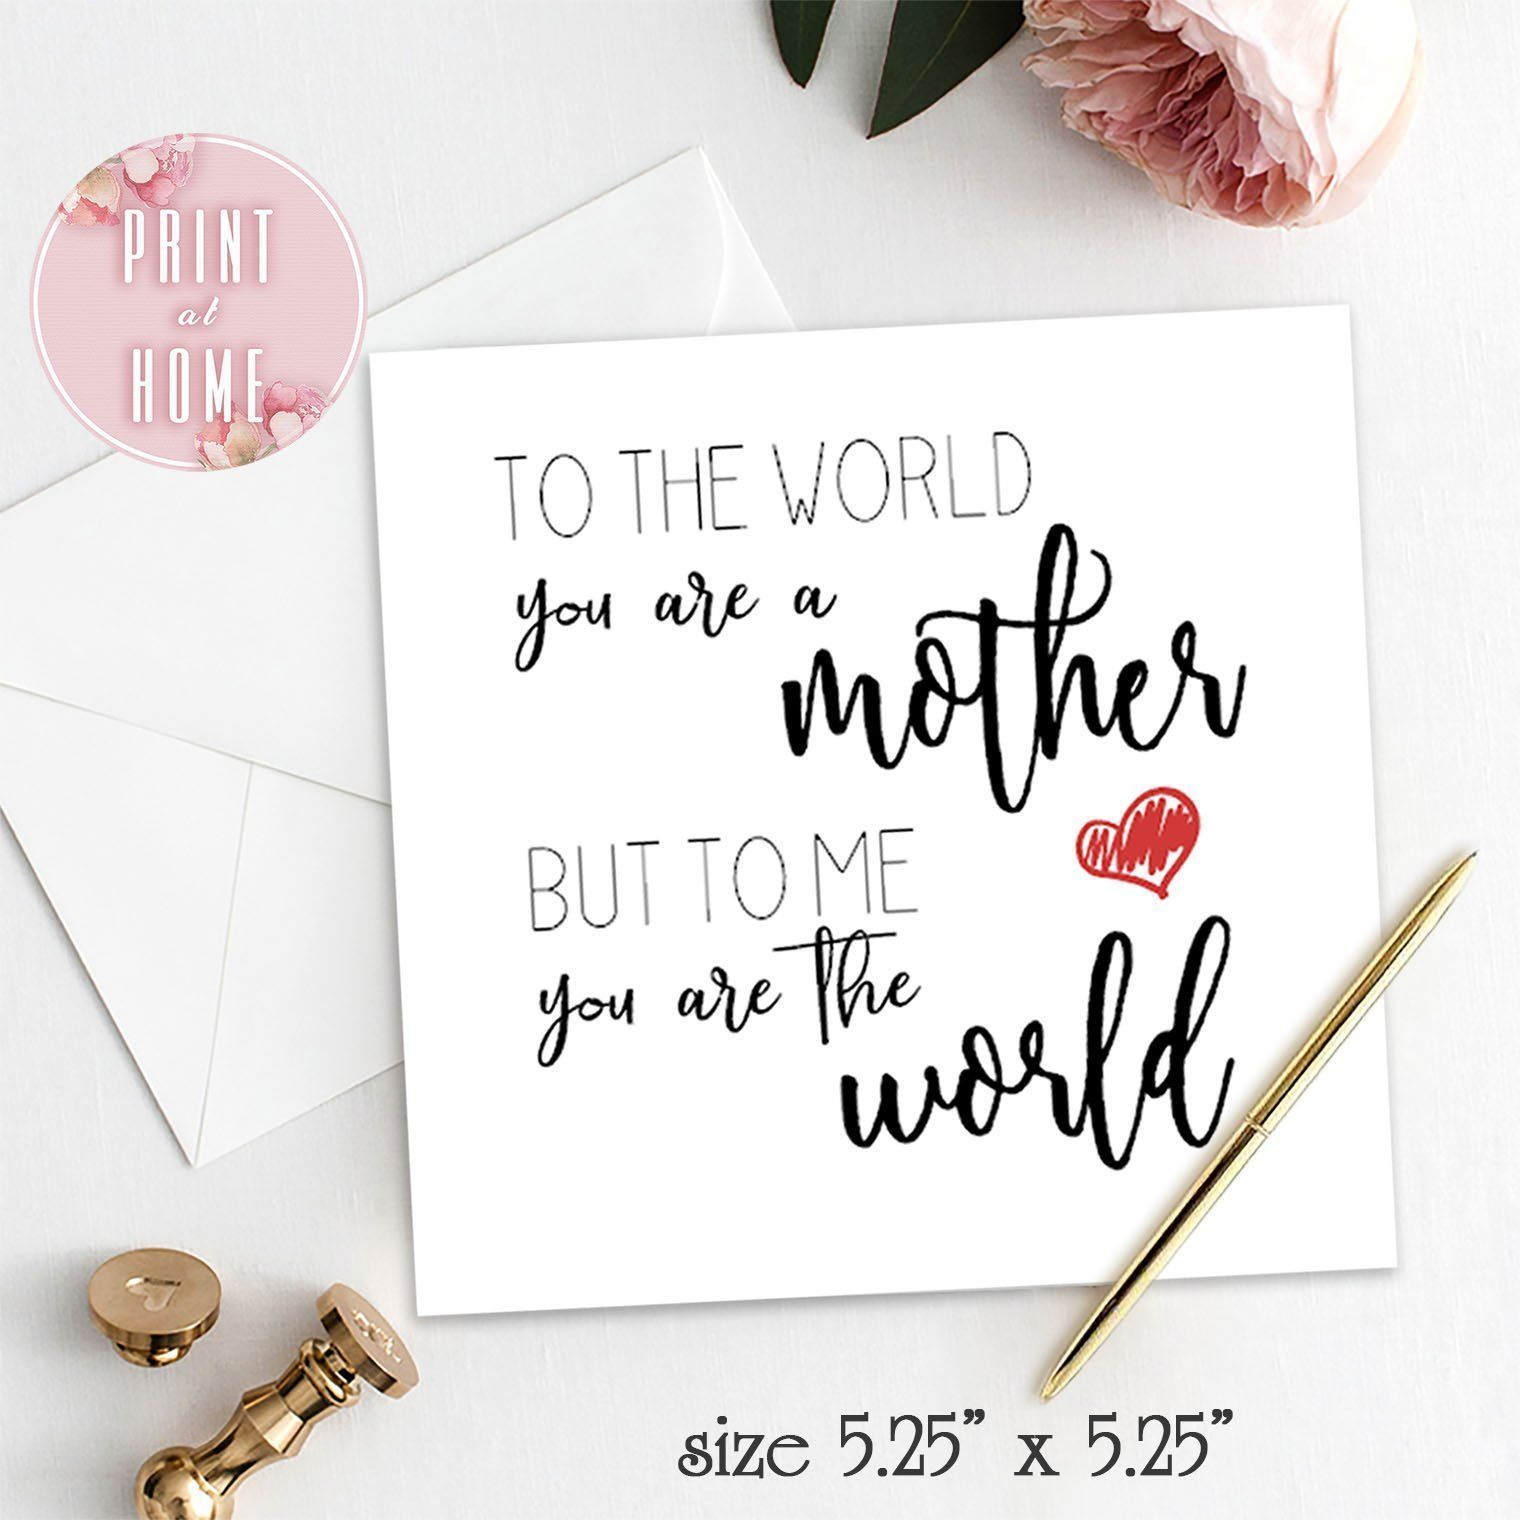 Card For Mommy From Daughter From Son Gift From Children Printable Card For Diy Birthday Cards For Mom Birthday Cards For Mother Diy Birthday Gifts For Mom